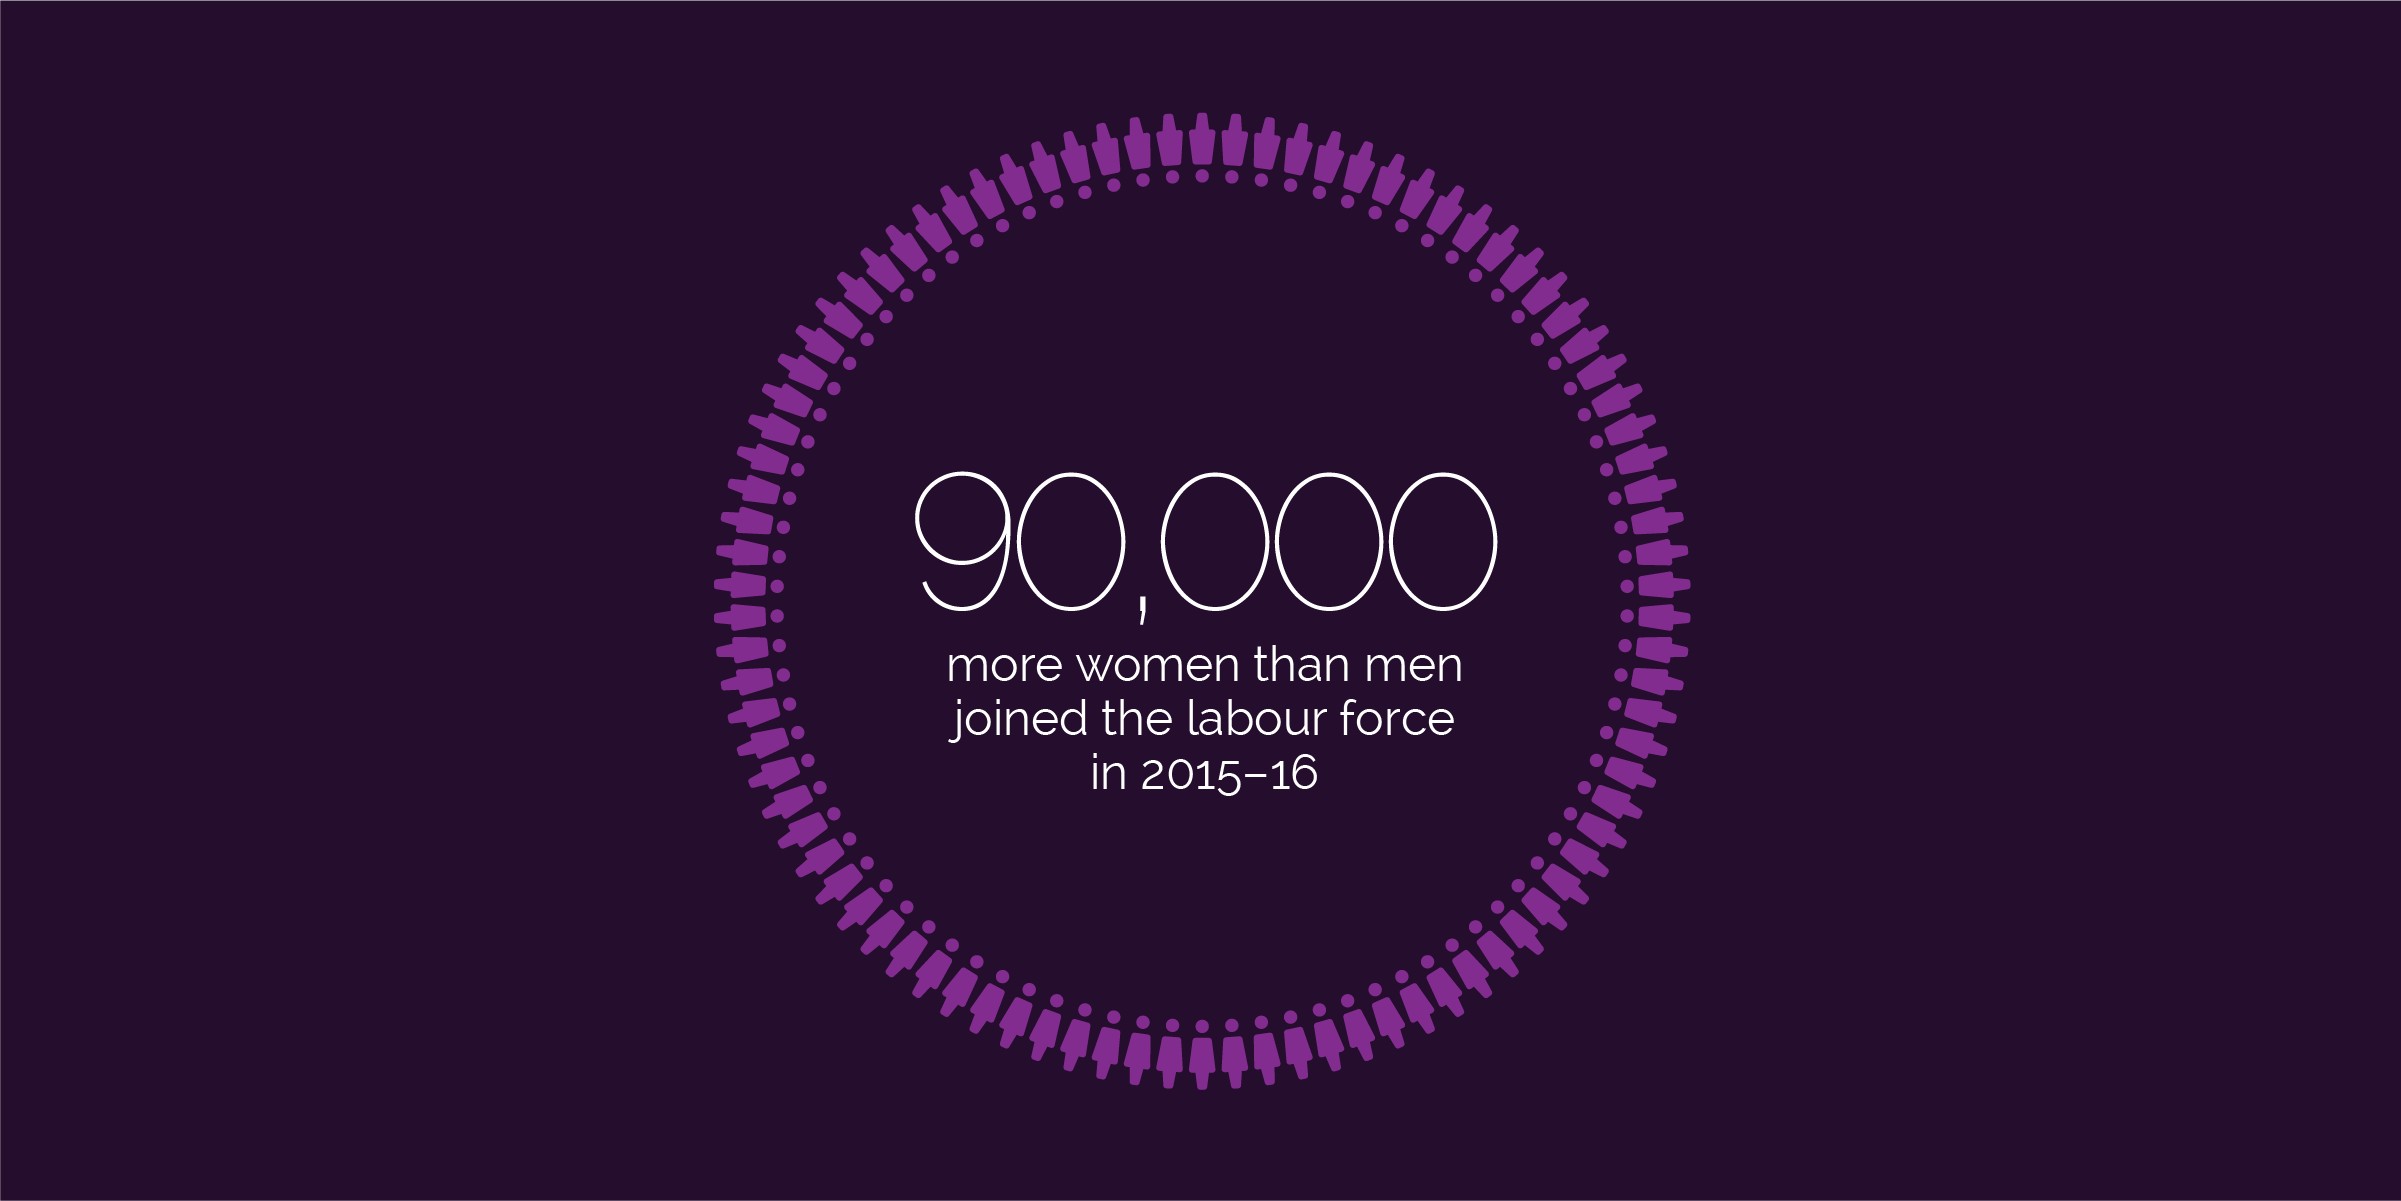 90,000 more women than men joined the labour force in 2015-16. Source: ABS Labour Force, Australia, Jan 2017 (cat. no. 6202.0)